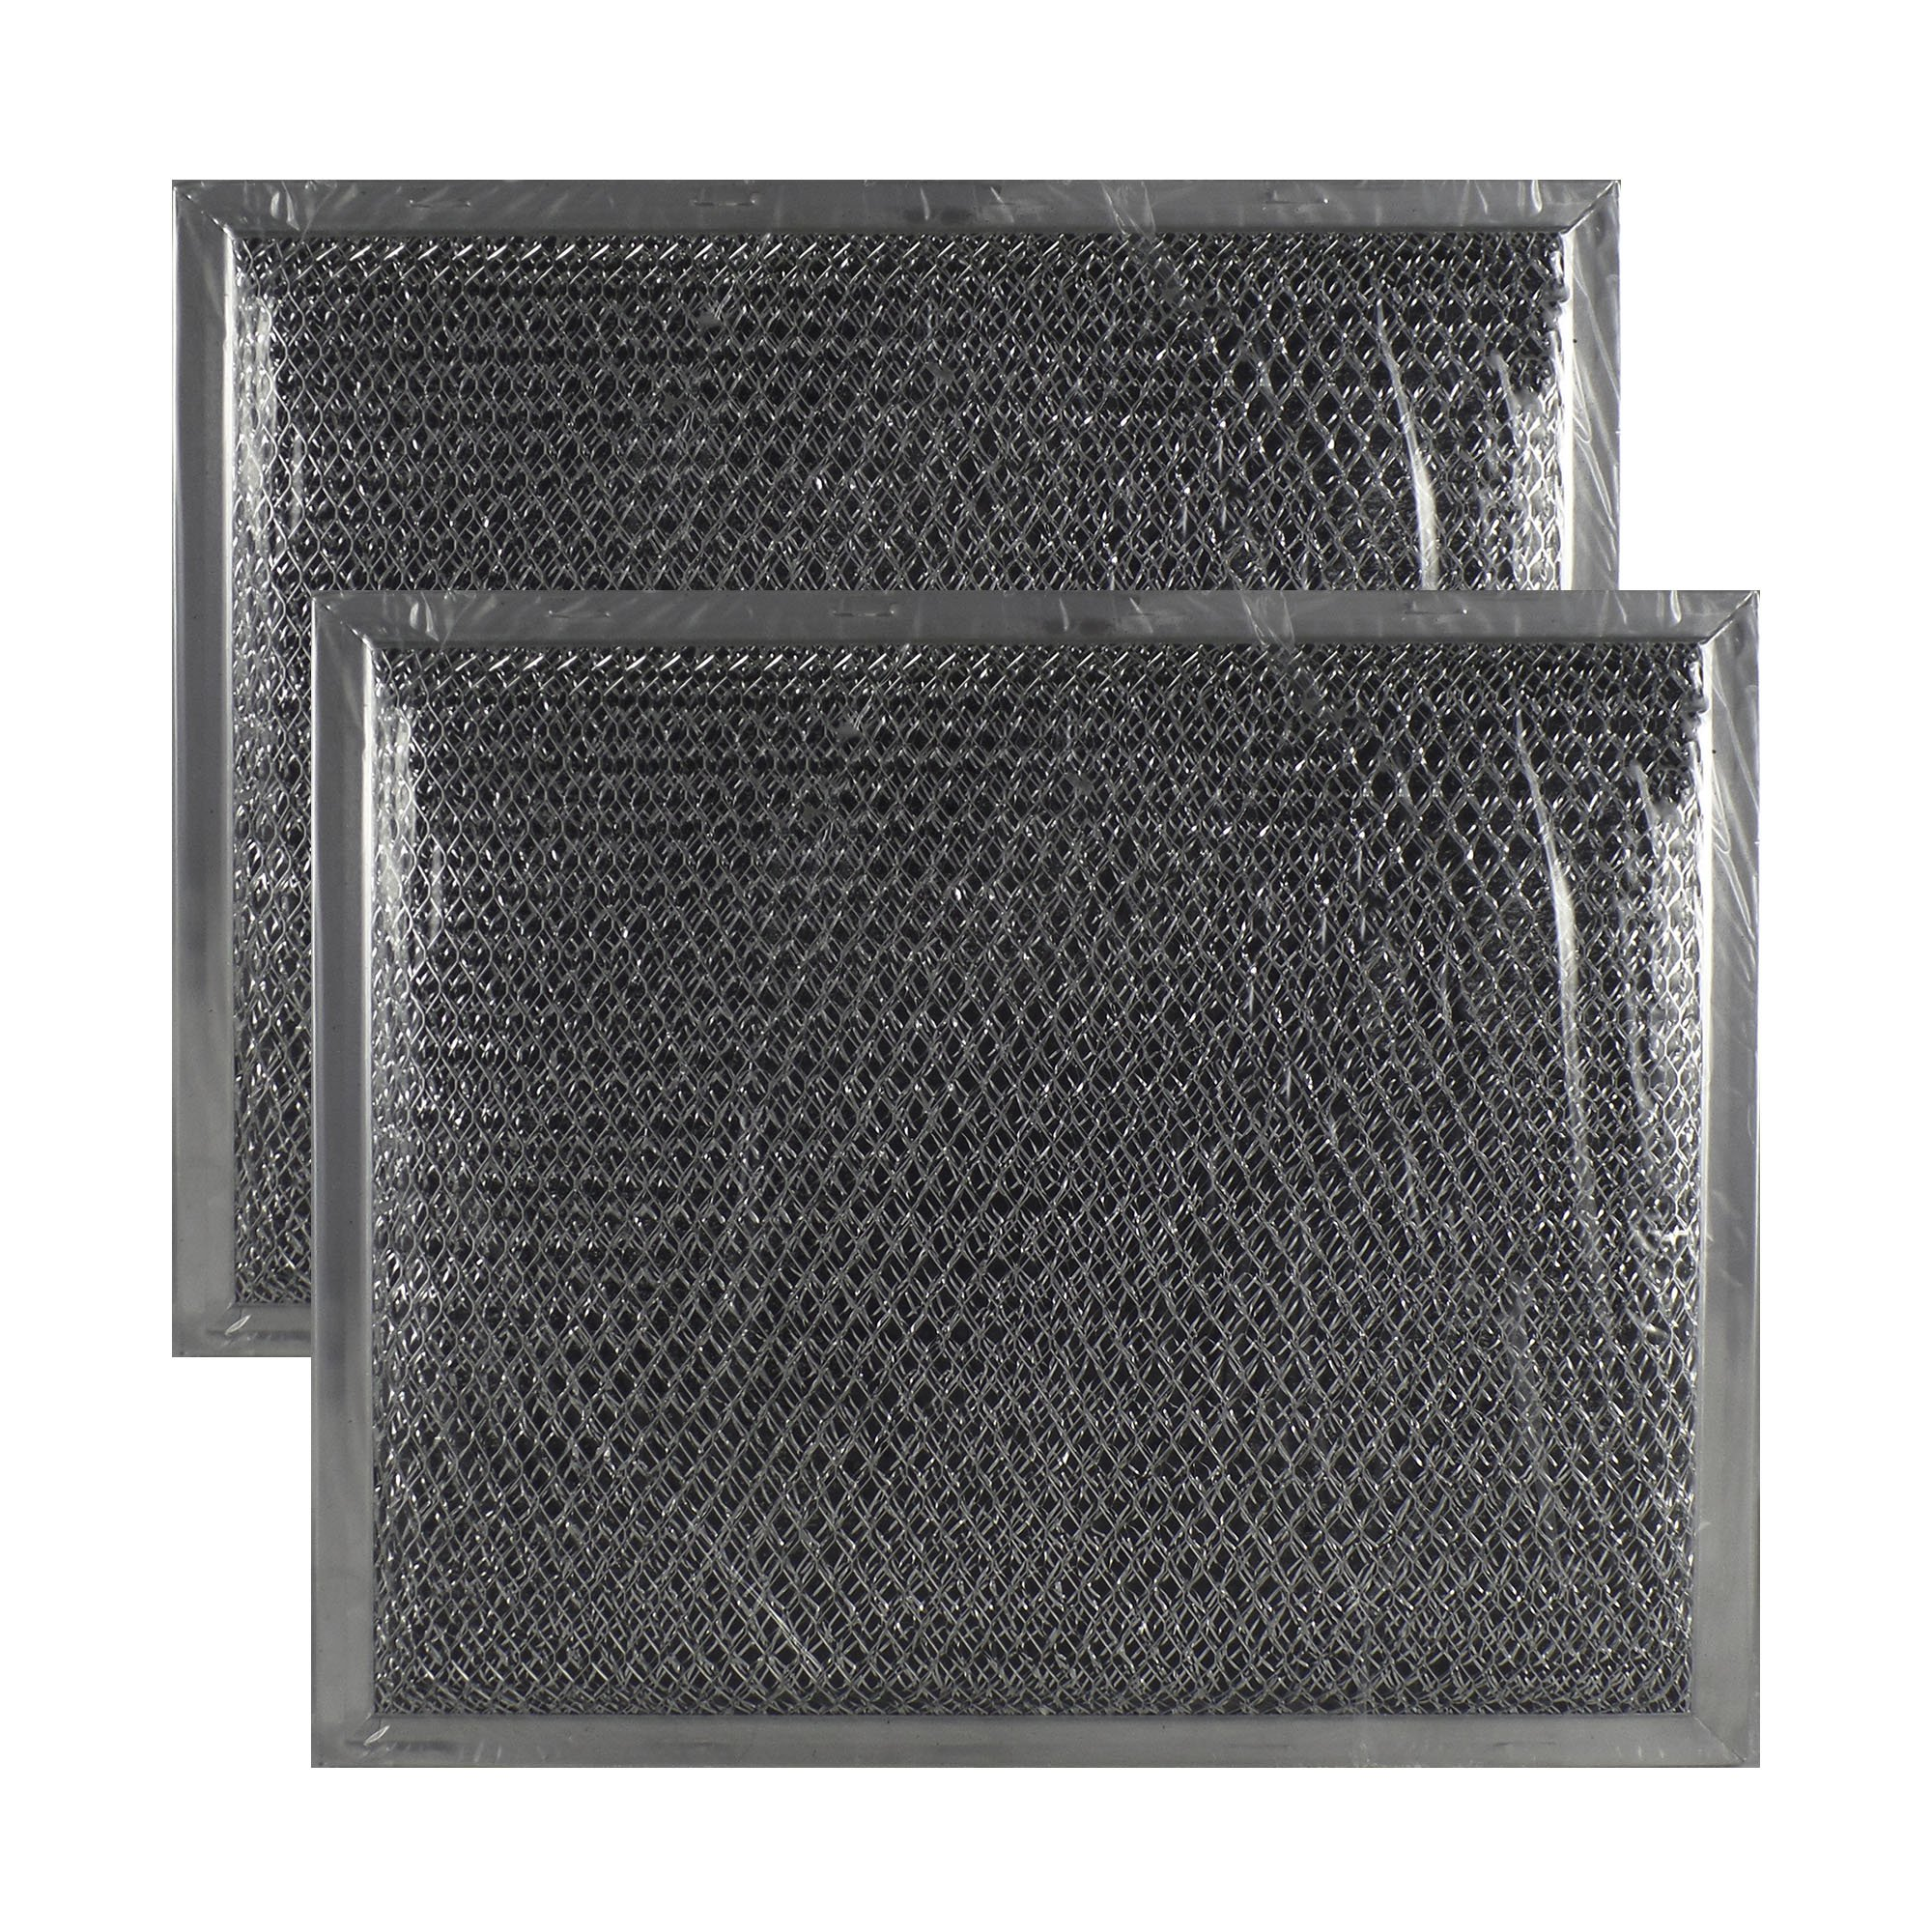 2-PACK Air Filter Factory Compatible Replacement For GE WB02X10700 Aluminum Mesh Combo Charcoal Filter